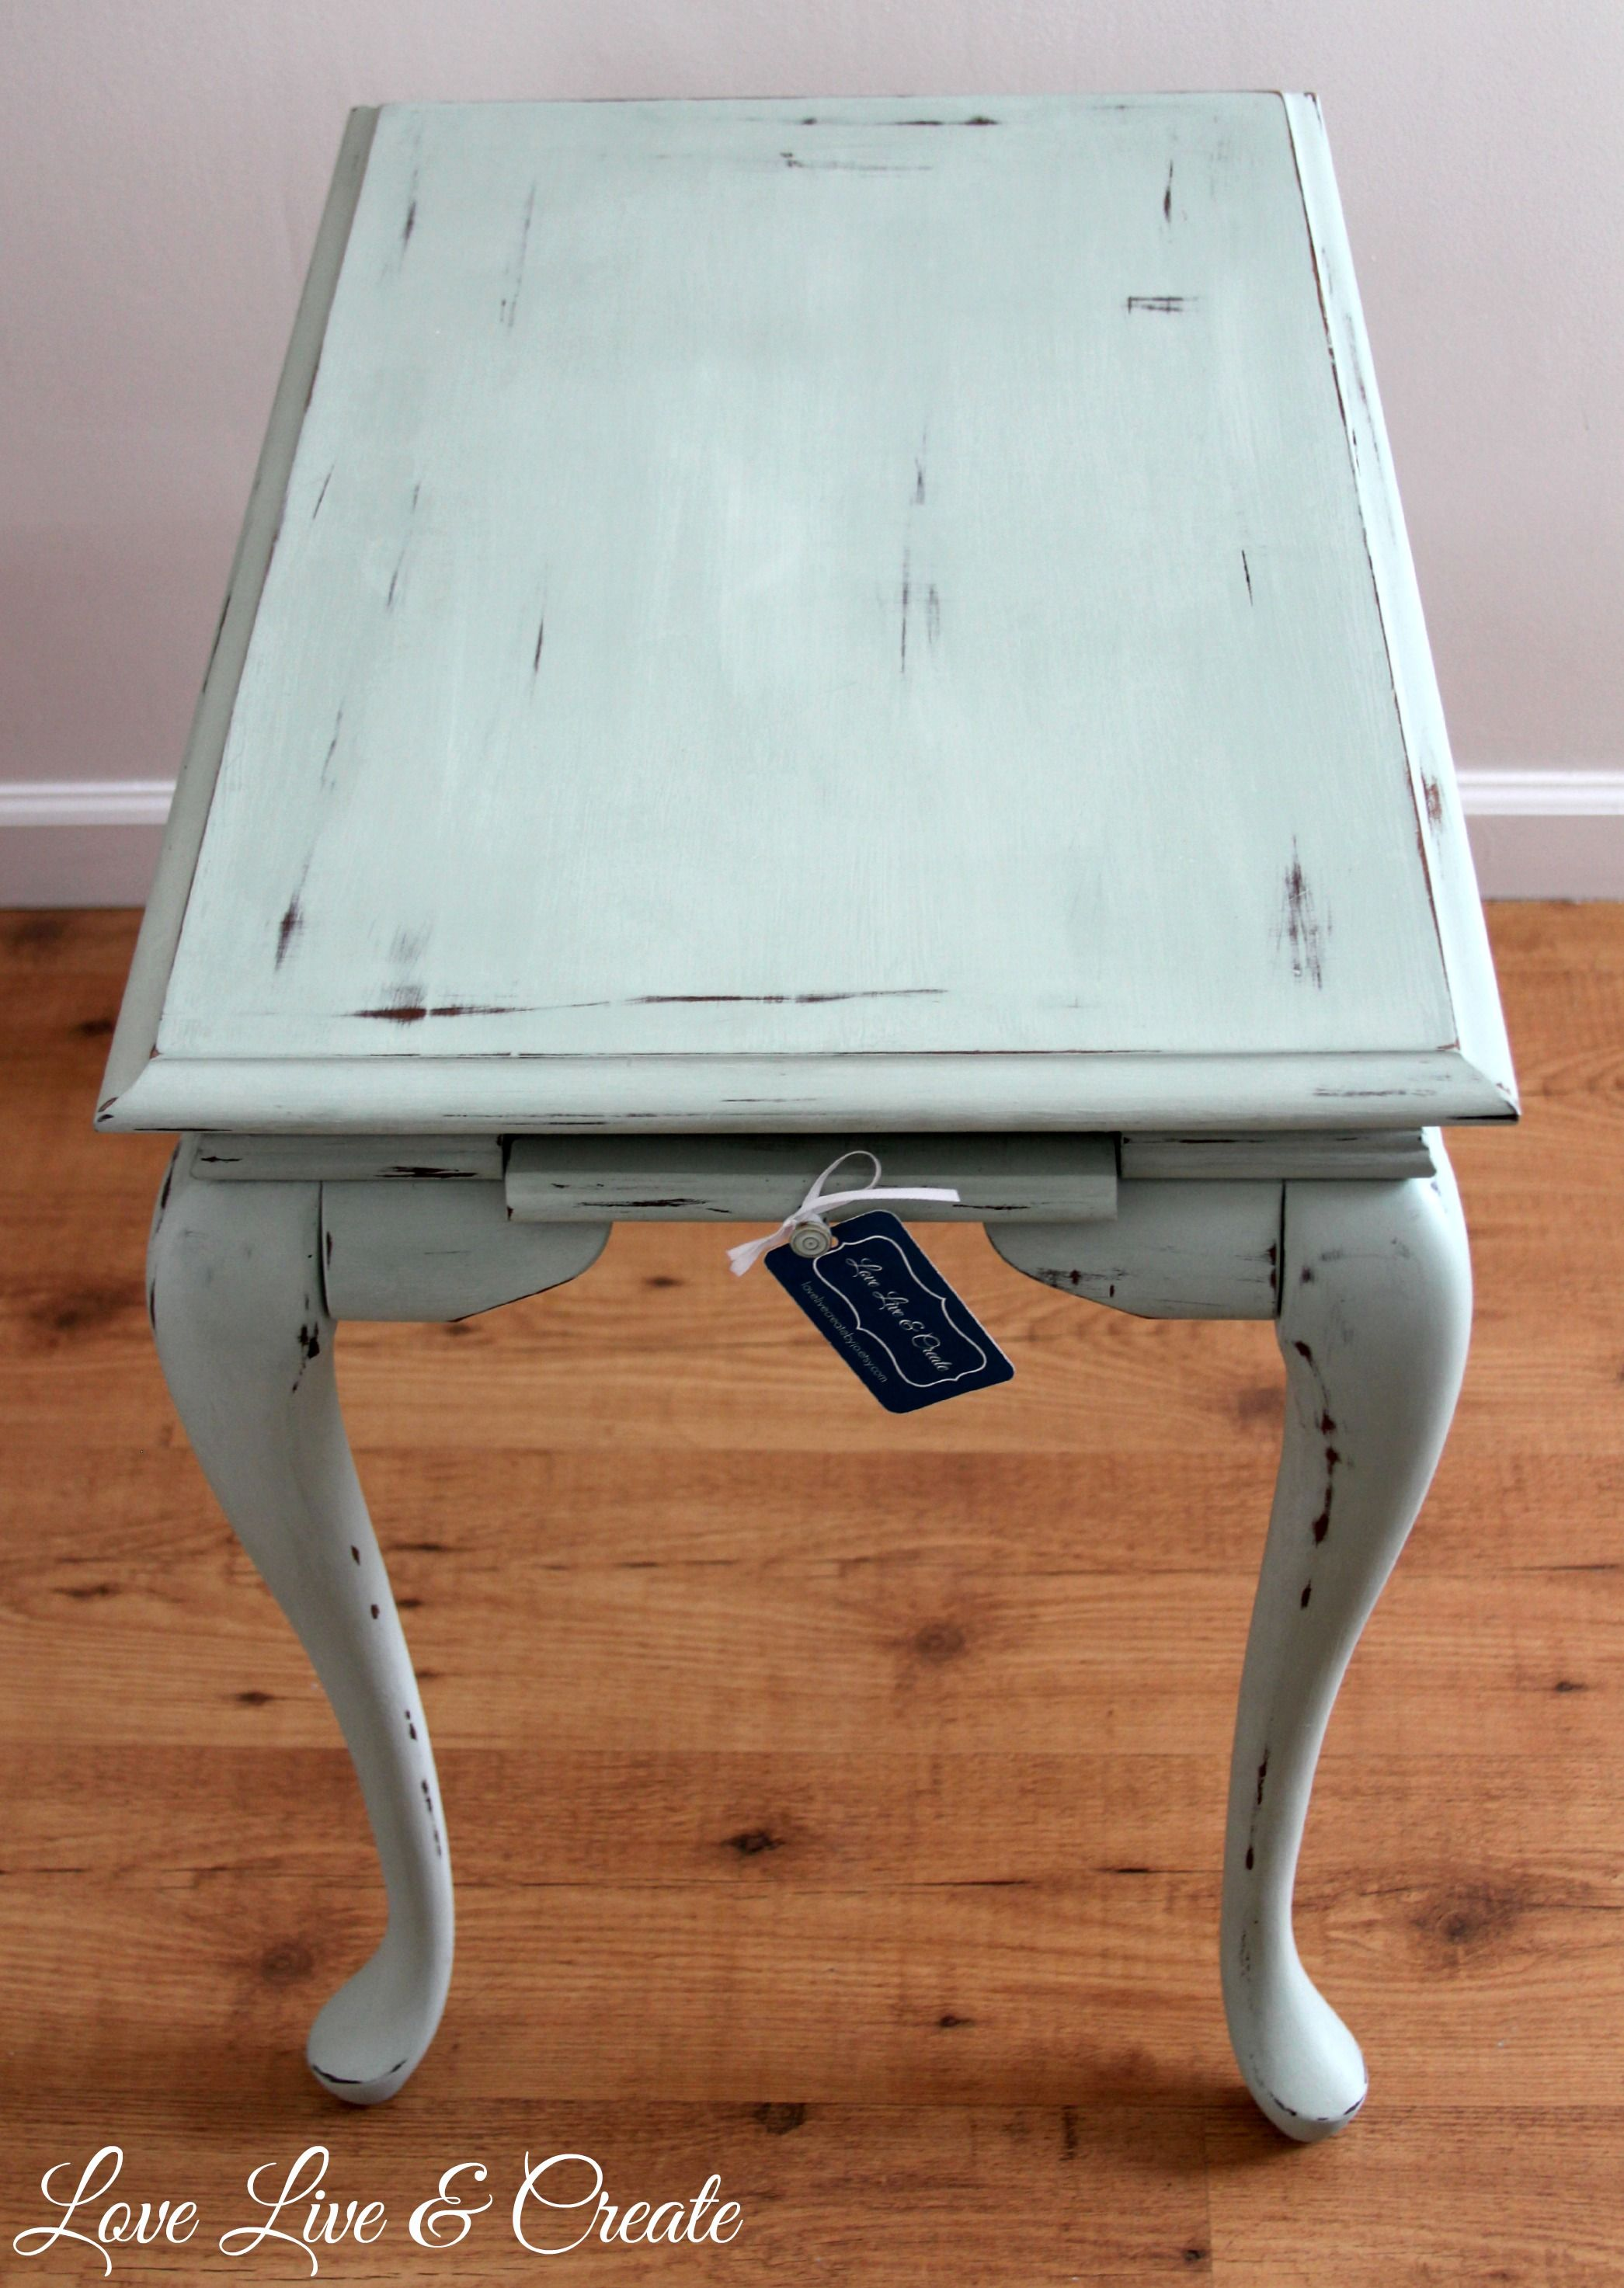 Mint Coffee Table Annie Sloan Mix Of Duck Egg Blue Pure White Sold Out Chalk Paint Coffee Table Painted Coffee Tables Blue Coffee Tables